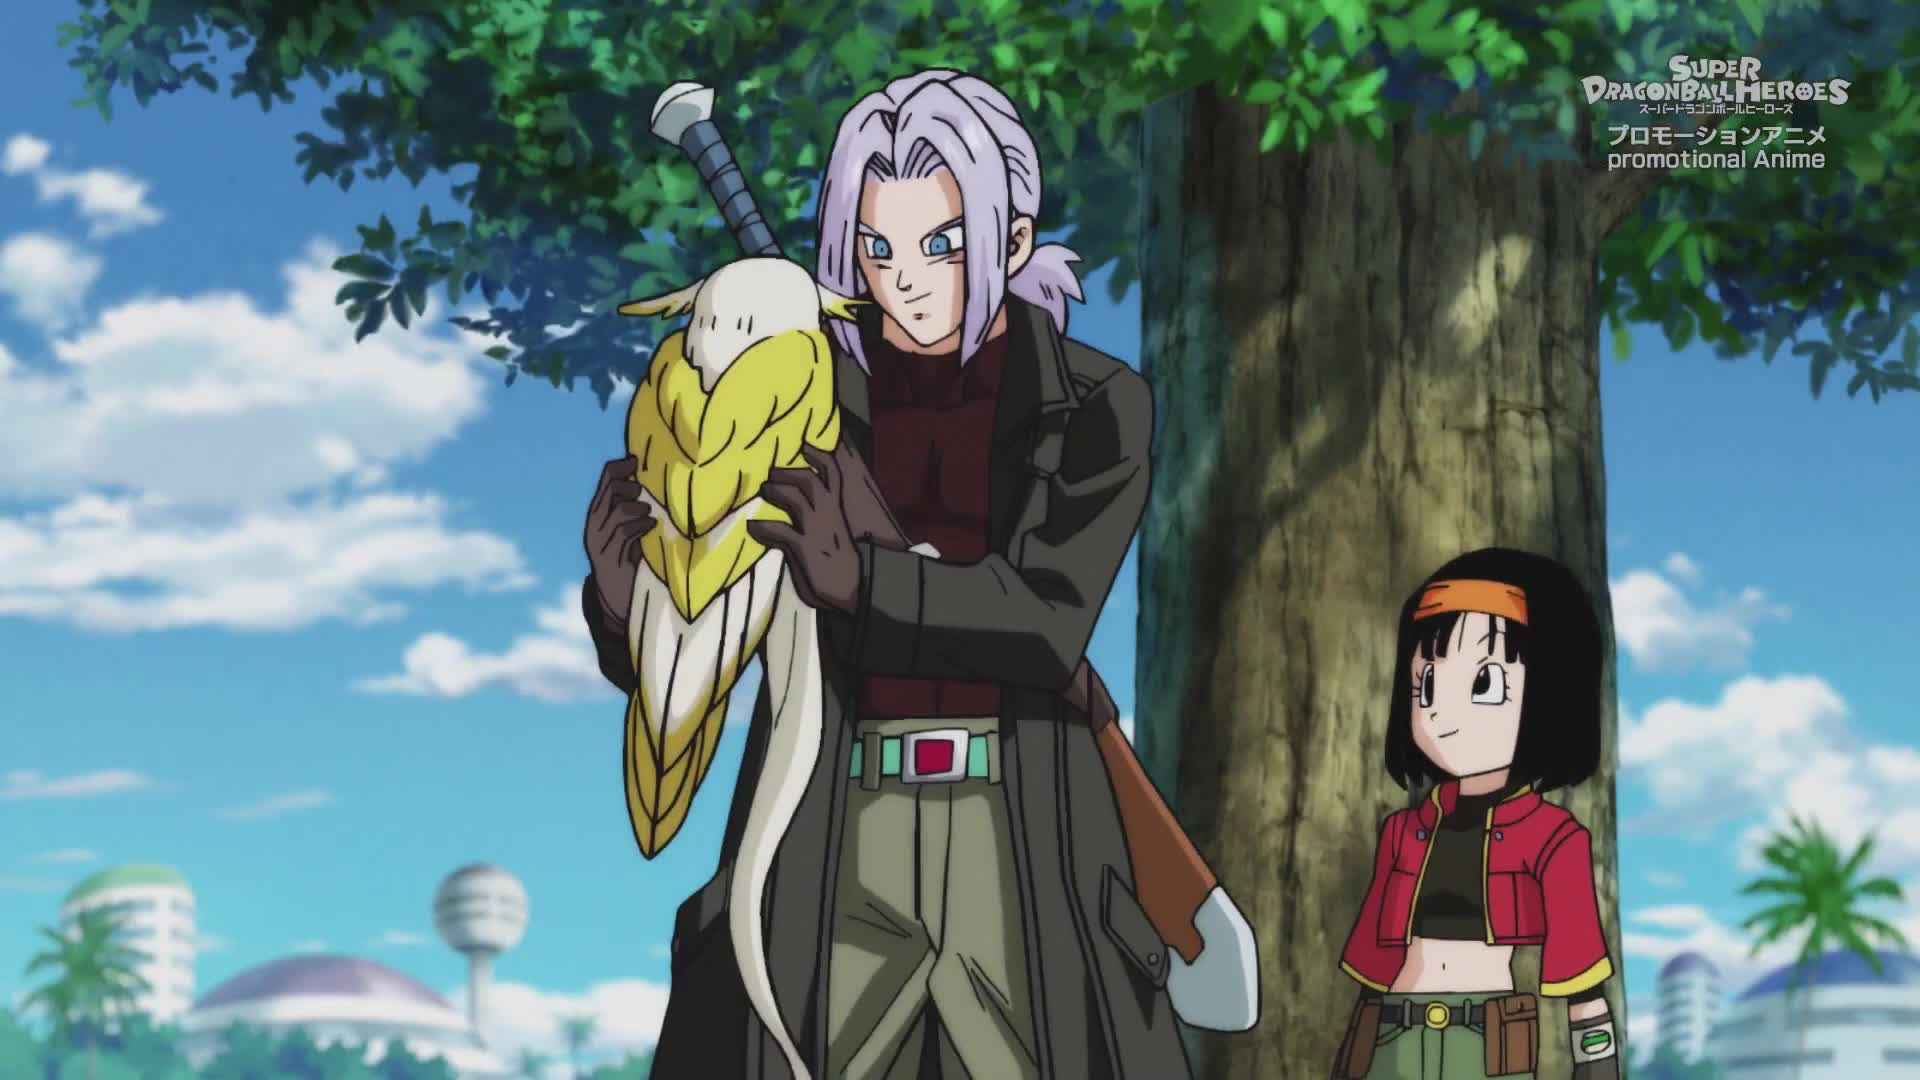 y2mate.com - Super Dragon Ball Heroes_ Big Bang Mission Episode 1_oPNFYmY48kY_1080p_9396.jpg